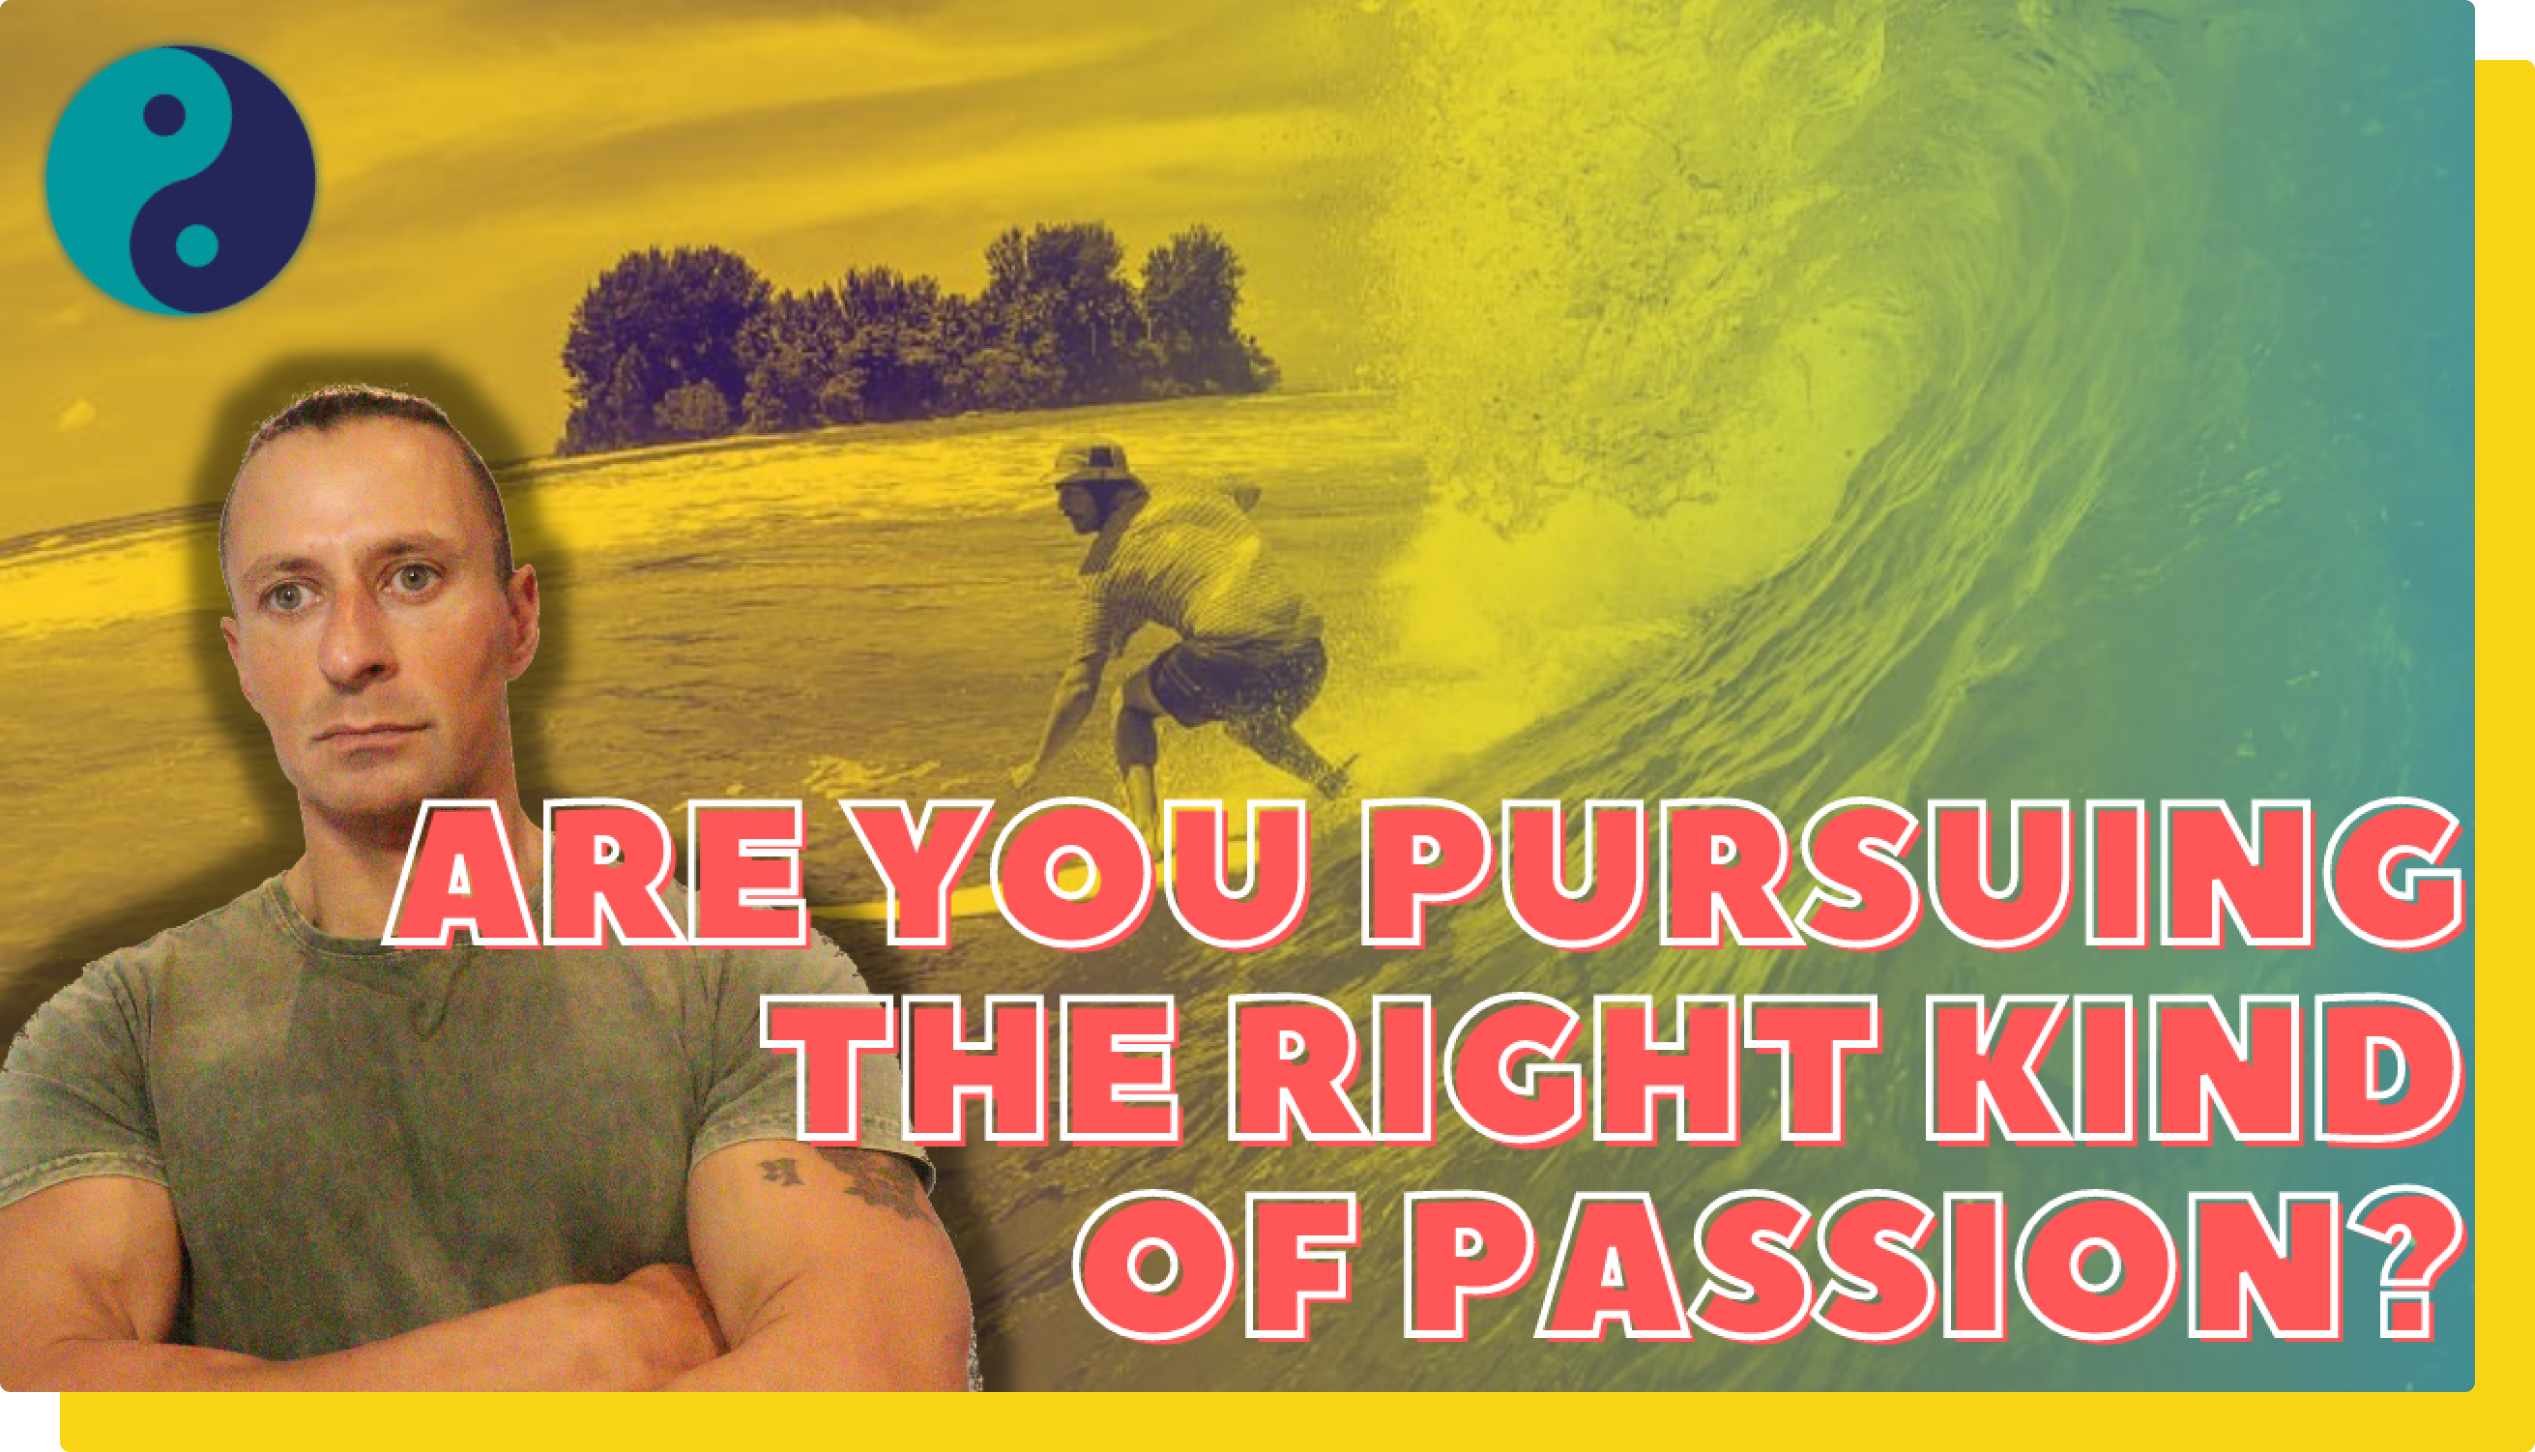 Workflow S1E3: Are You Following the RIGHT Kind of Passion?